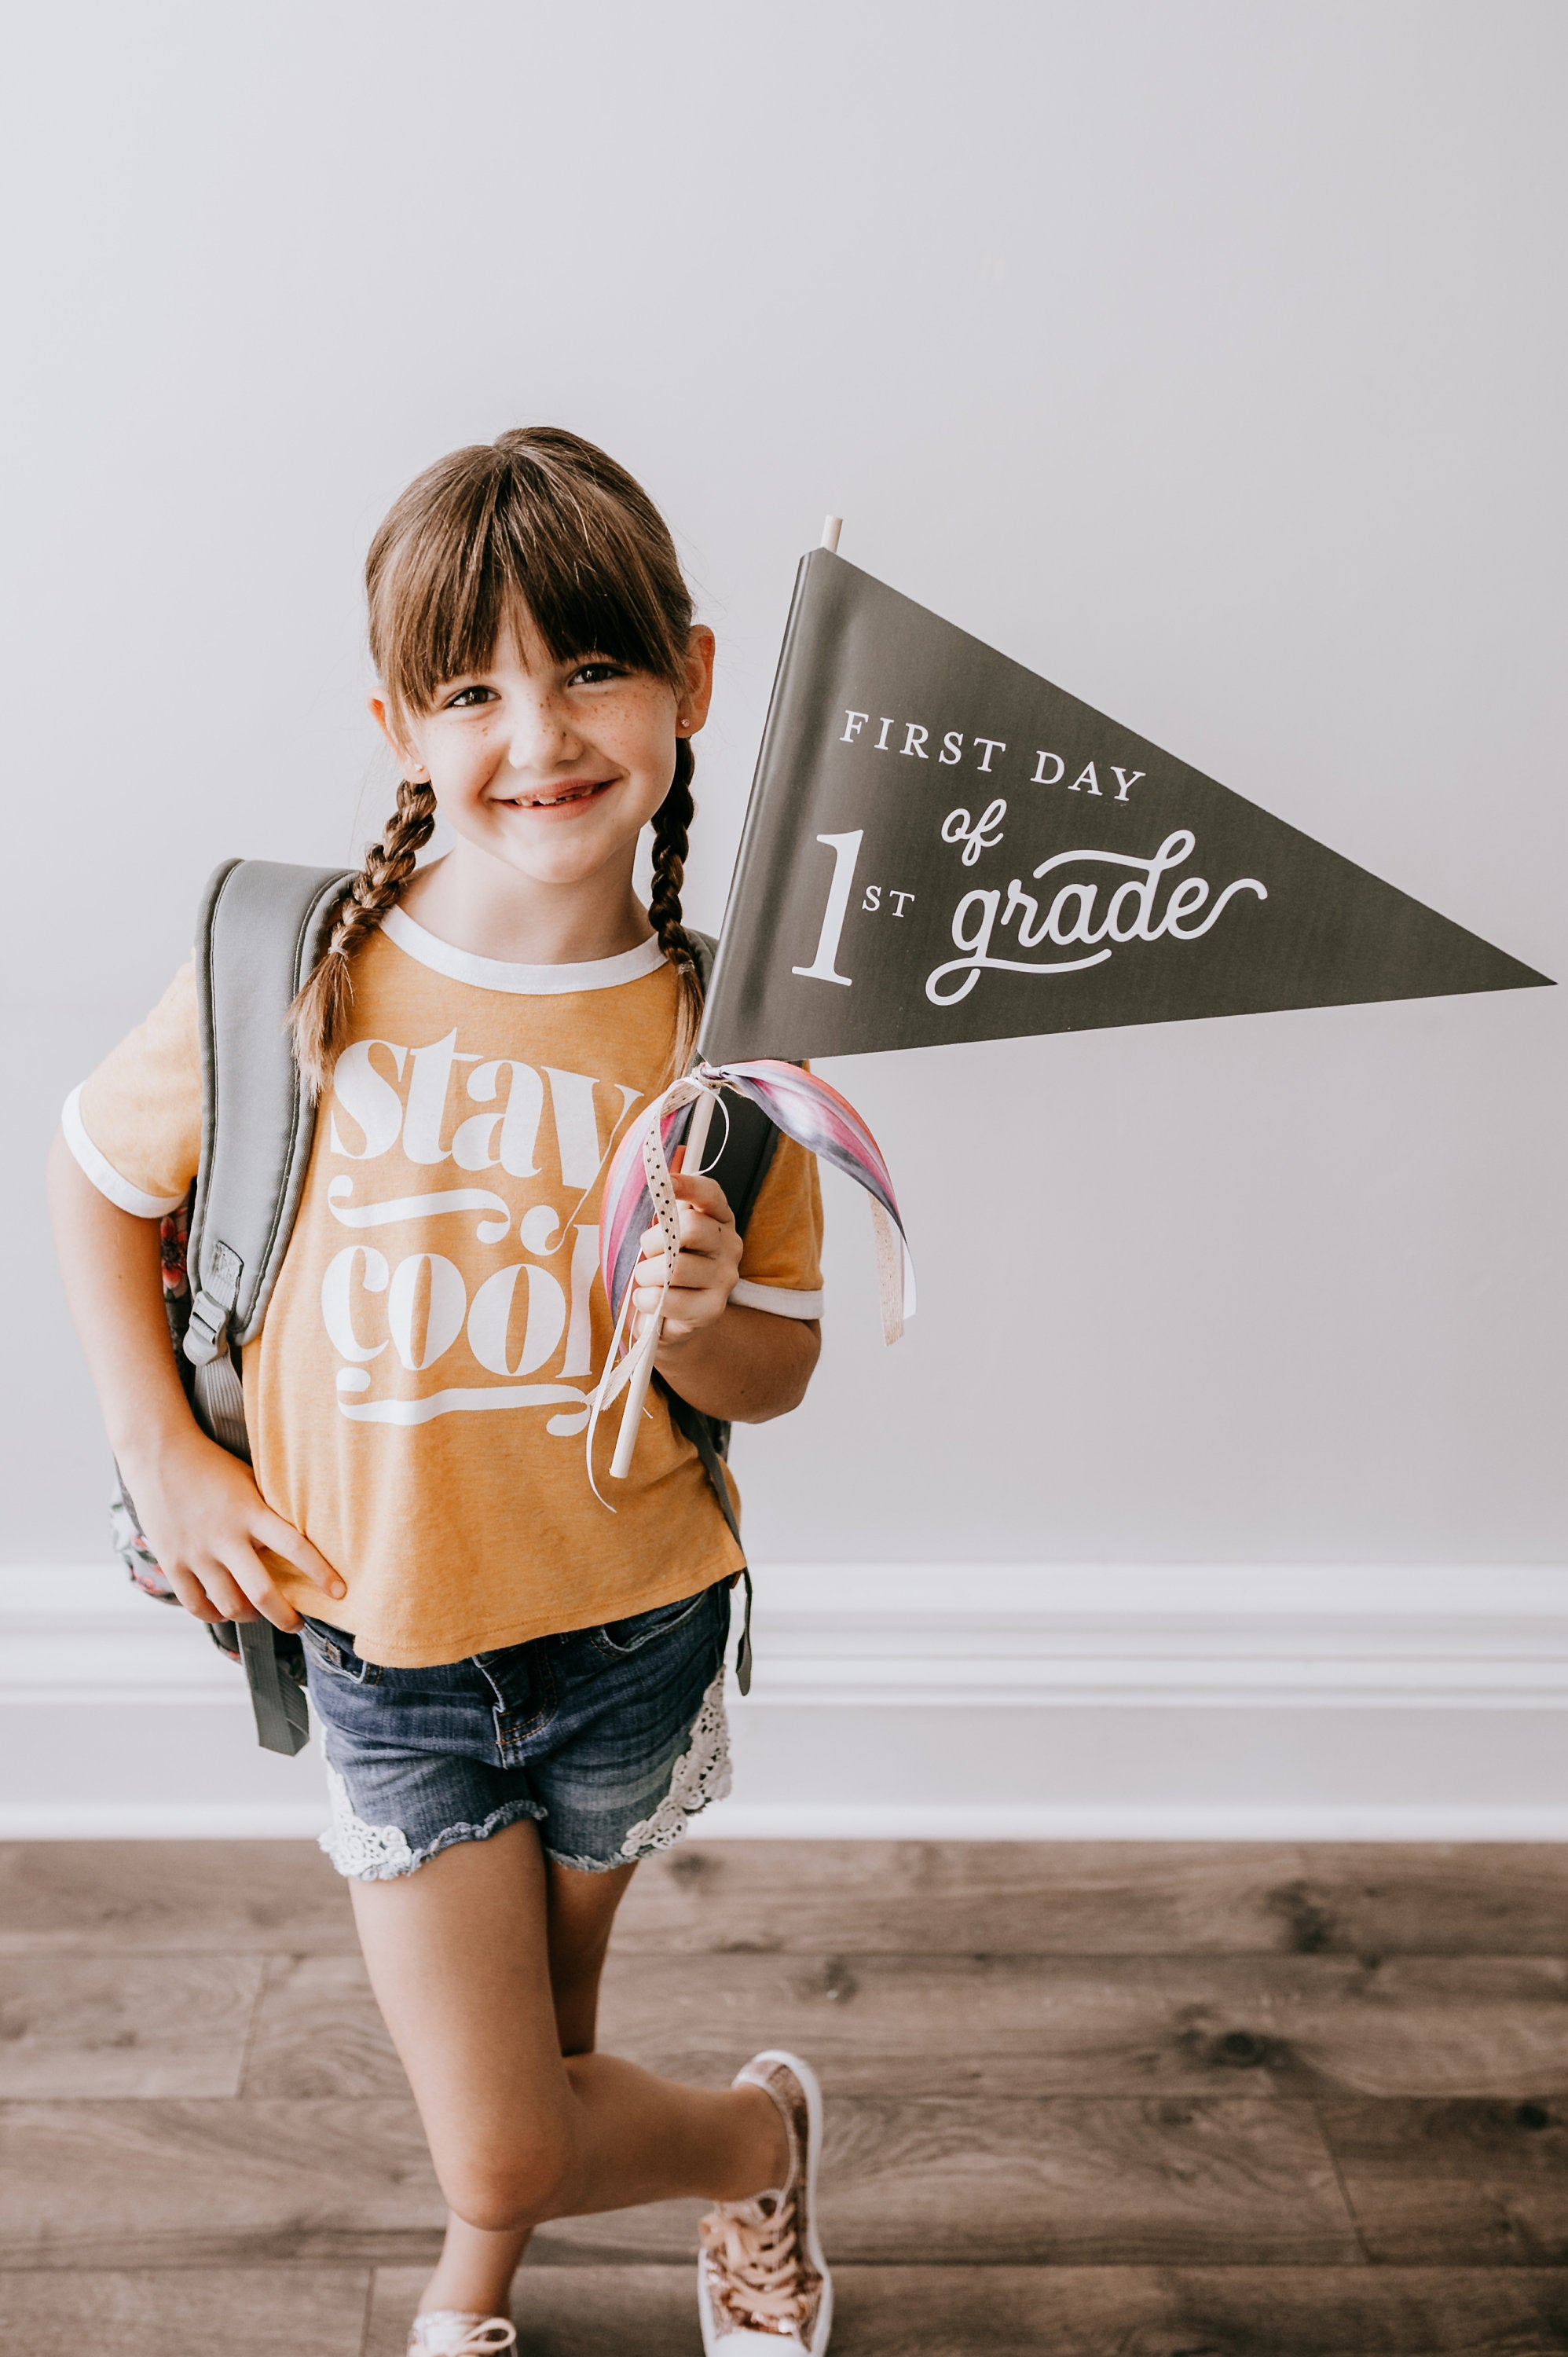 First Day of School Flag